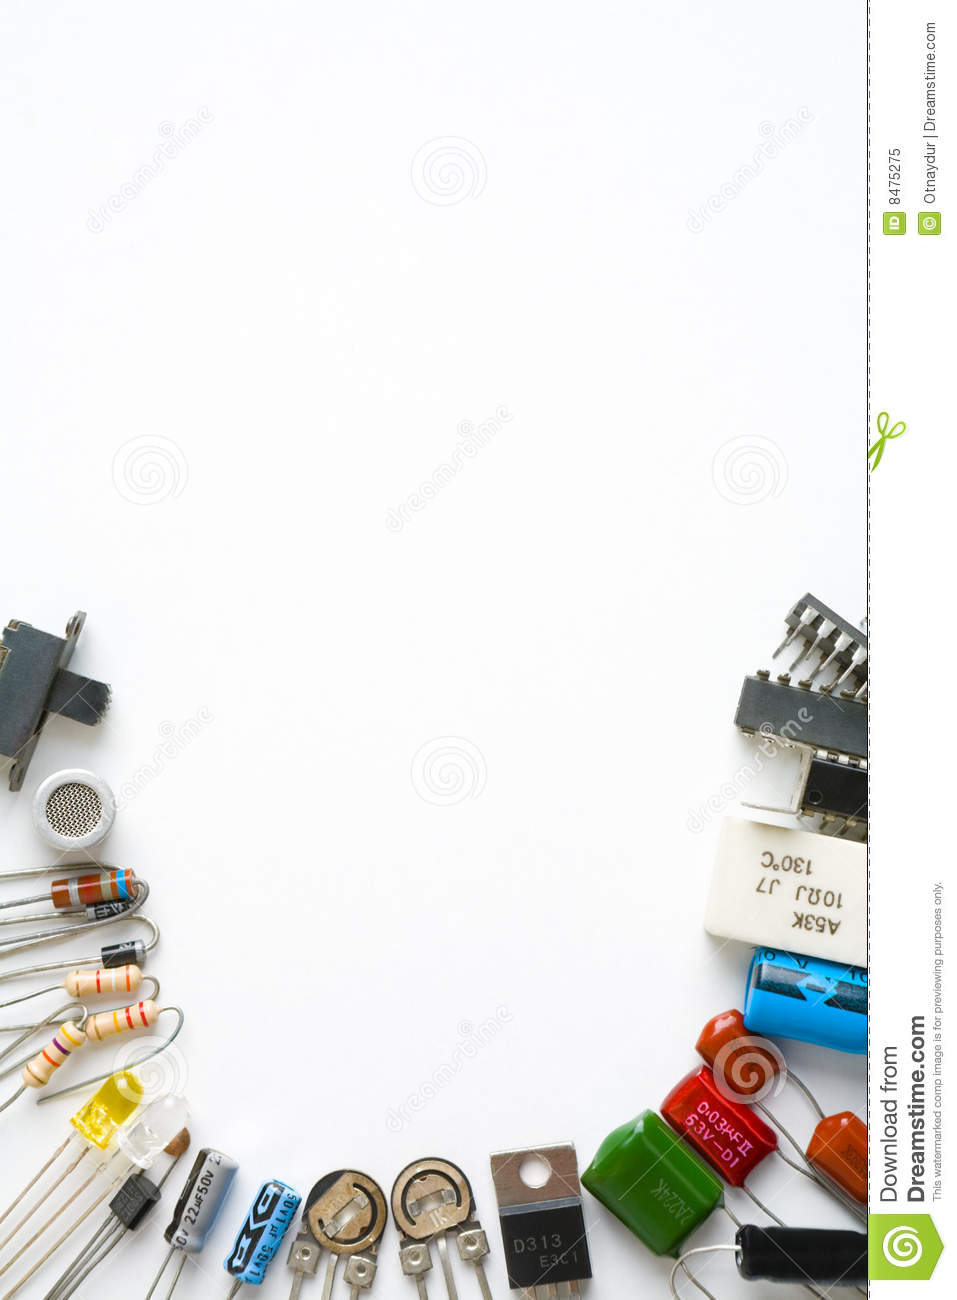 Electronic components background